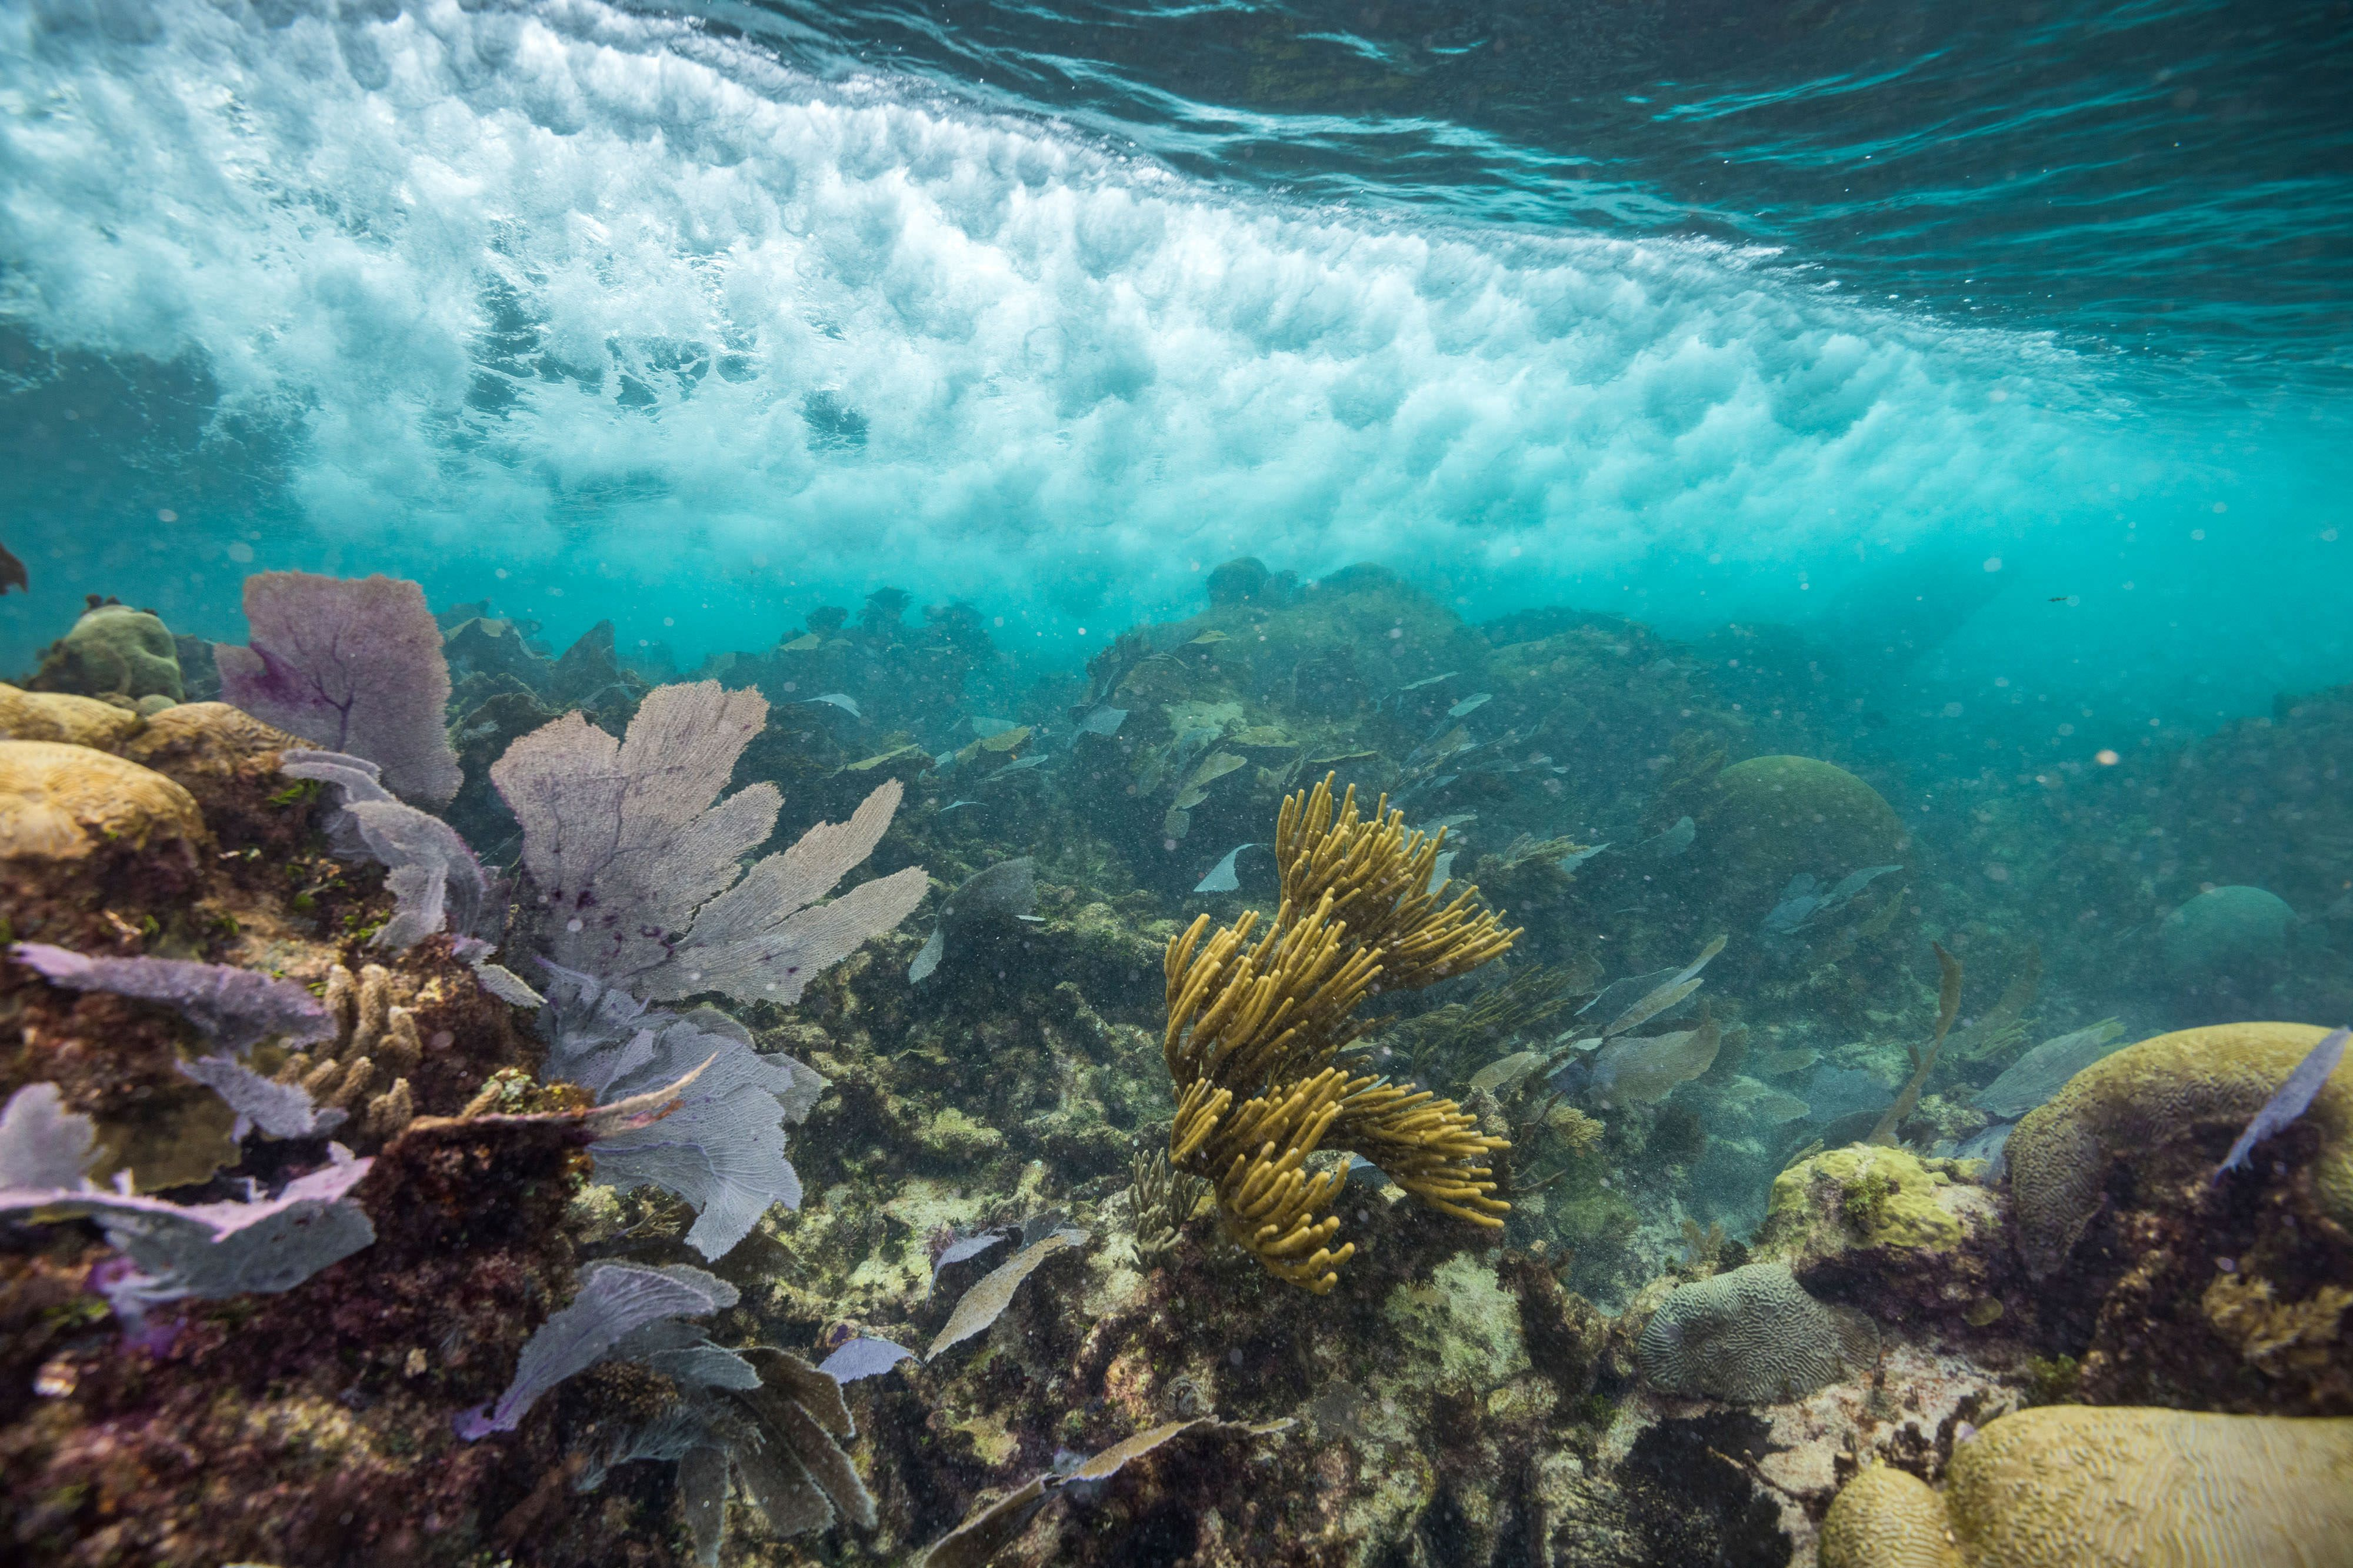 an underwater view of a wave passing over a healthy, colorful coral reef